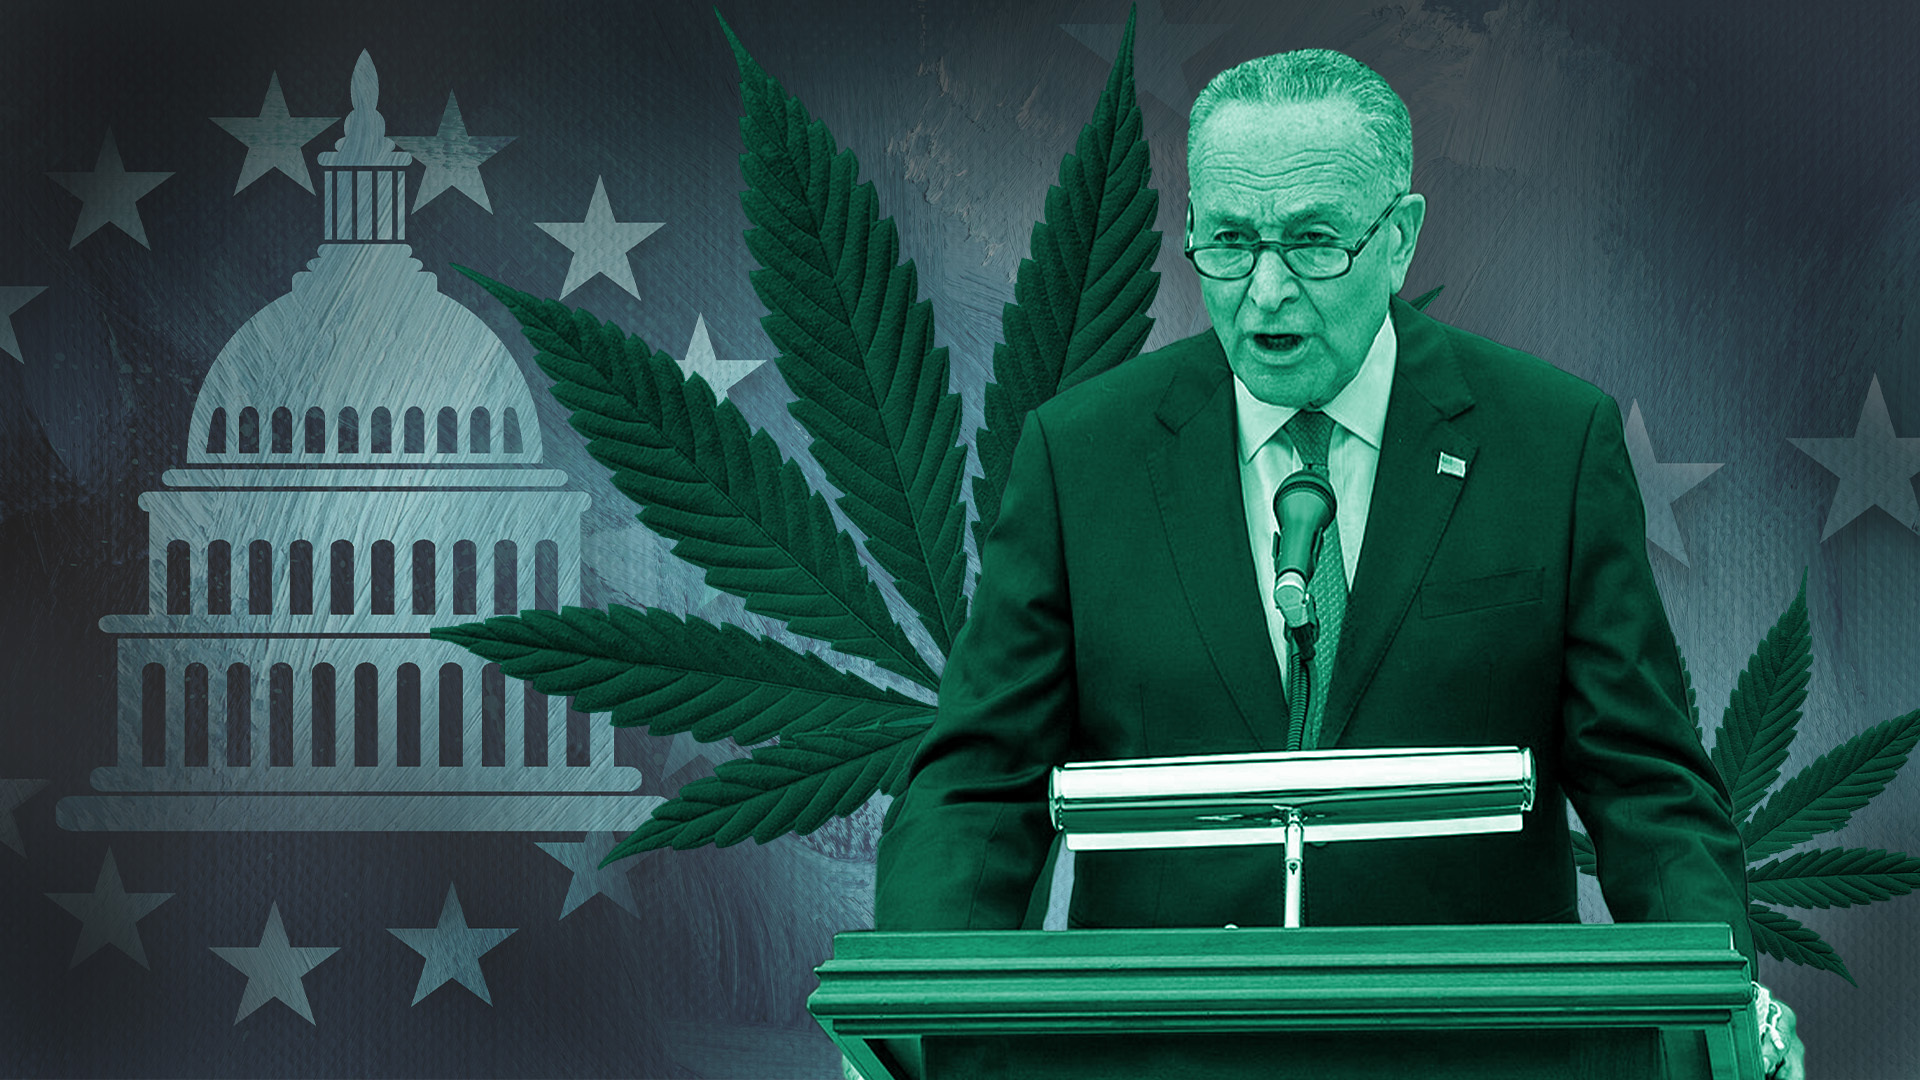 Chuck Schumer unveils marijuana bill that would end federal prohibition, finally | Leafly